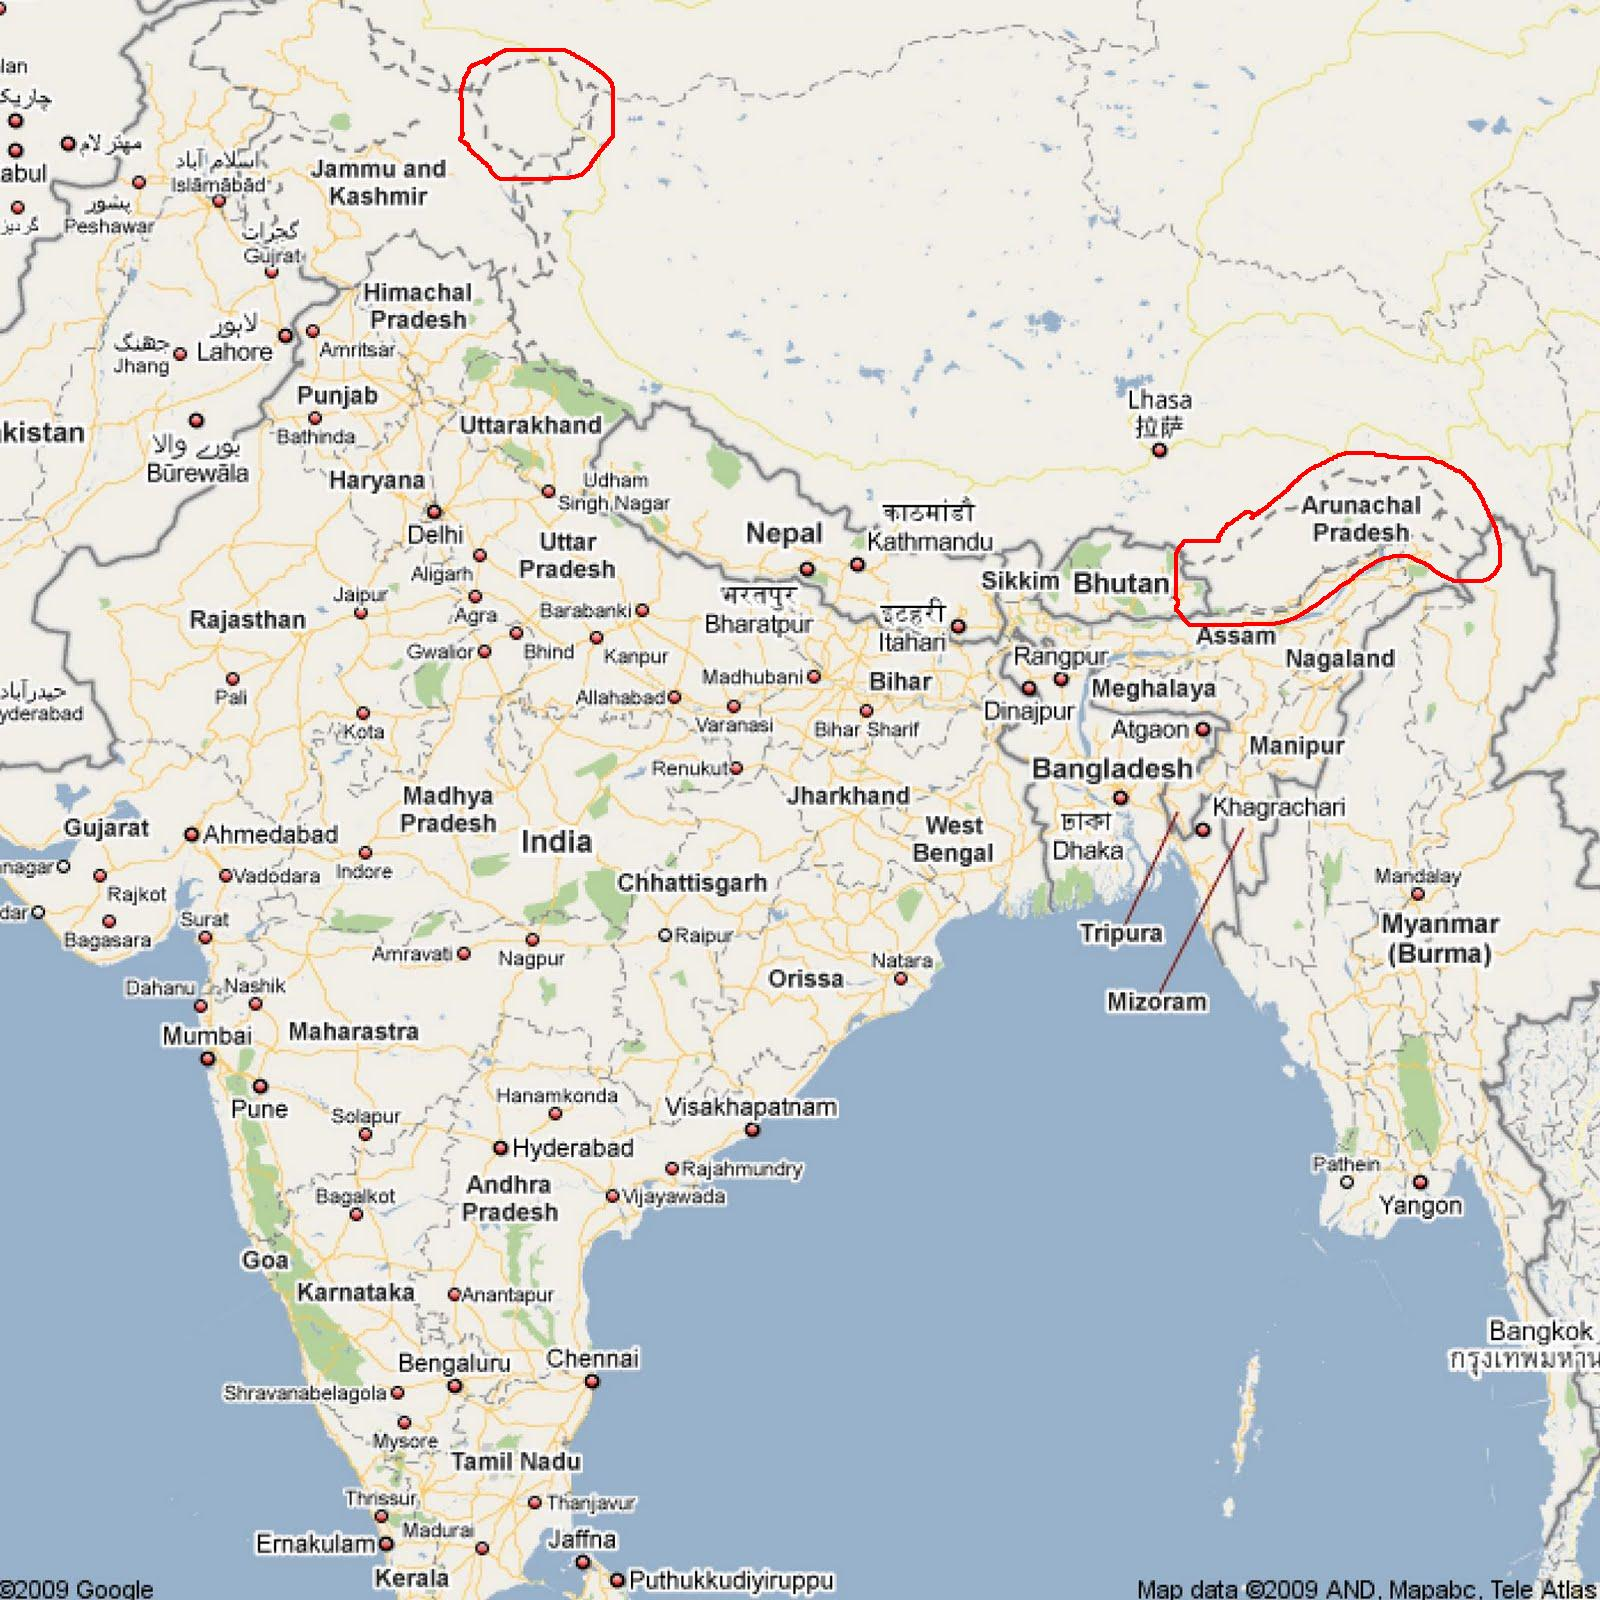 Google appeases Dragon by acceding Aksai Chin and Arunachal ... on chola incident, 1987 sino-indian skirmish, map of kunlun mountains, map of south asia, tawang town, map of tian shan, azad kashmir, sino-soviet border conflict, indo-pak war of 1971, map of spratly islands, map of south china sea, map of telangana, map of srinagar, states of india, paracel islands, kalapani river, siachen glacier, arunachal pradesh, map of patiala, map of nicobar islands, map of kashmir, kashmir conflict, indo-bangladesh enclaves, map of sikkim, sino-indian war, karakoram pass, map of punjab, line of actual control, partition of india, map of arunachal pradesh, map of taklamakan desert, map of india, china–india relations,